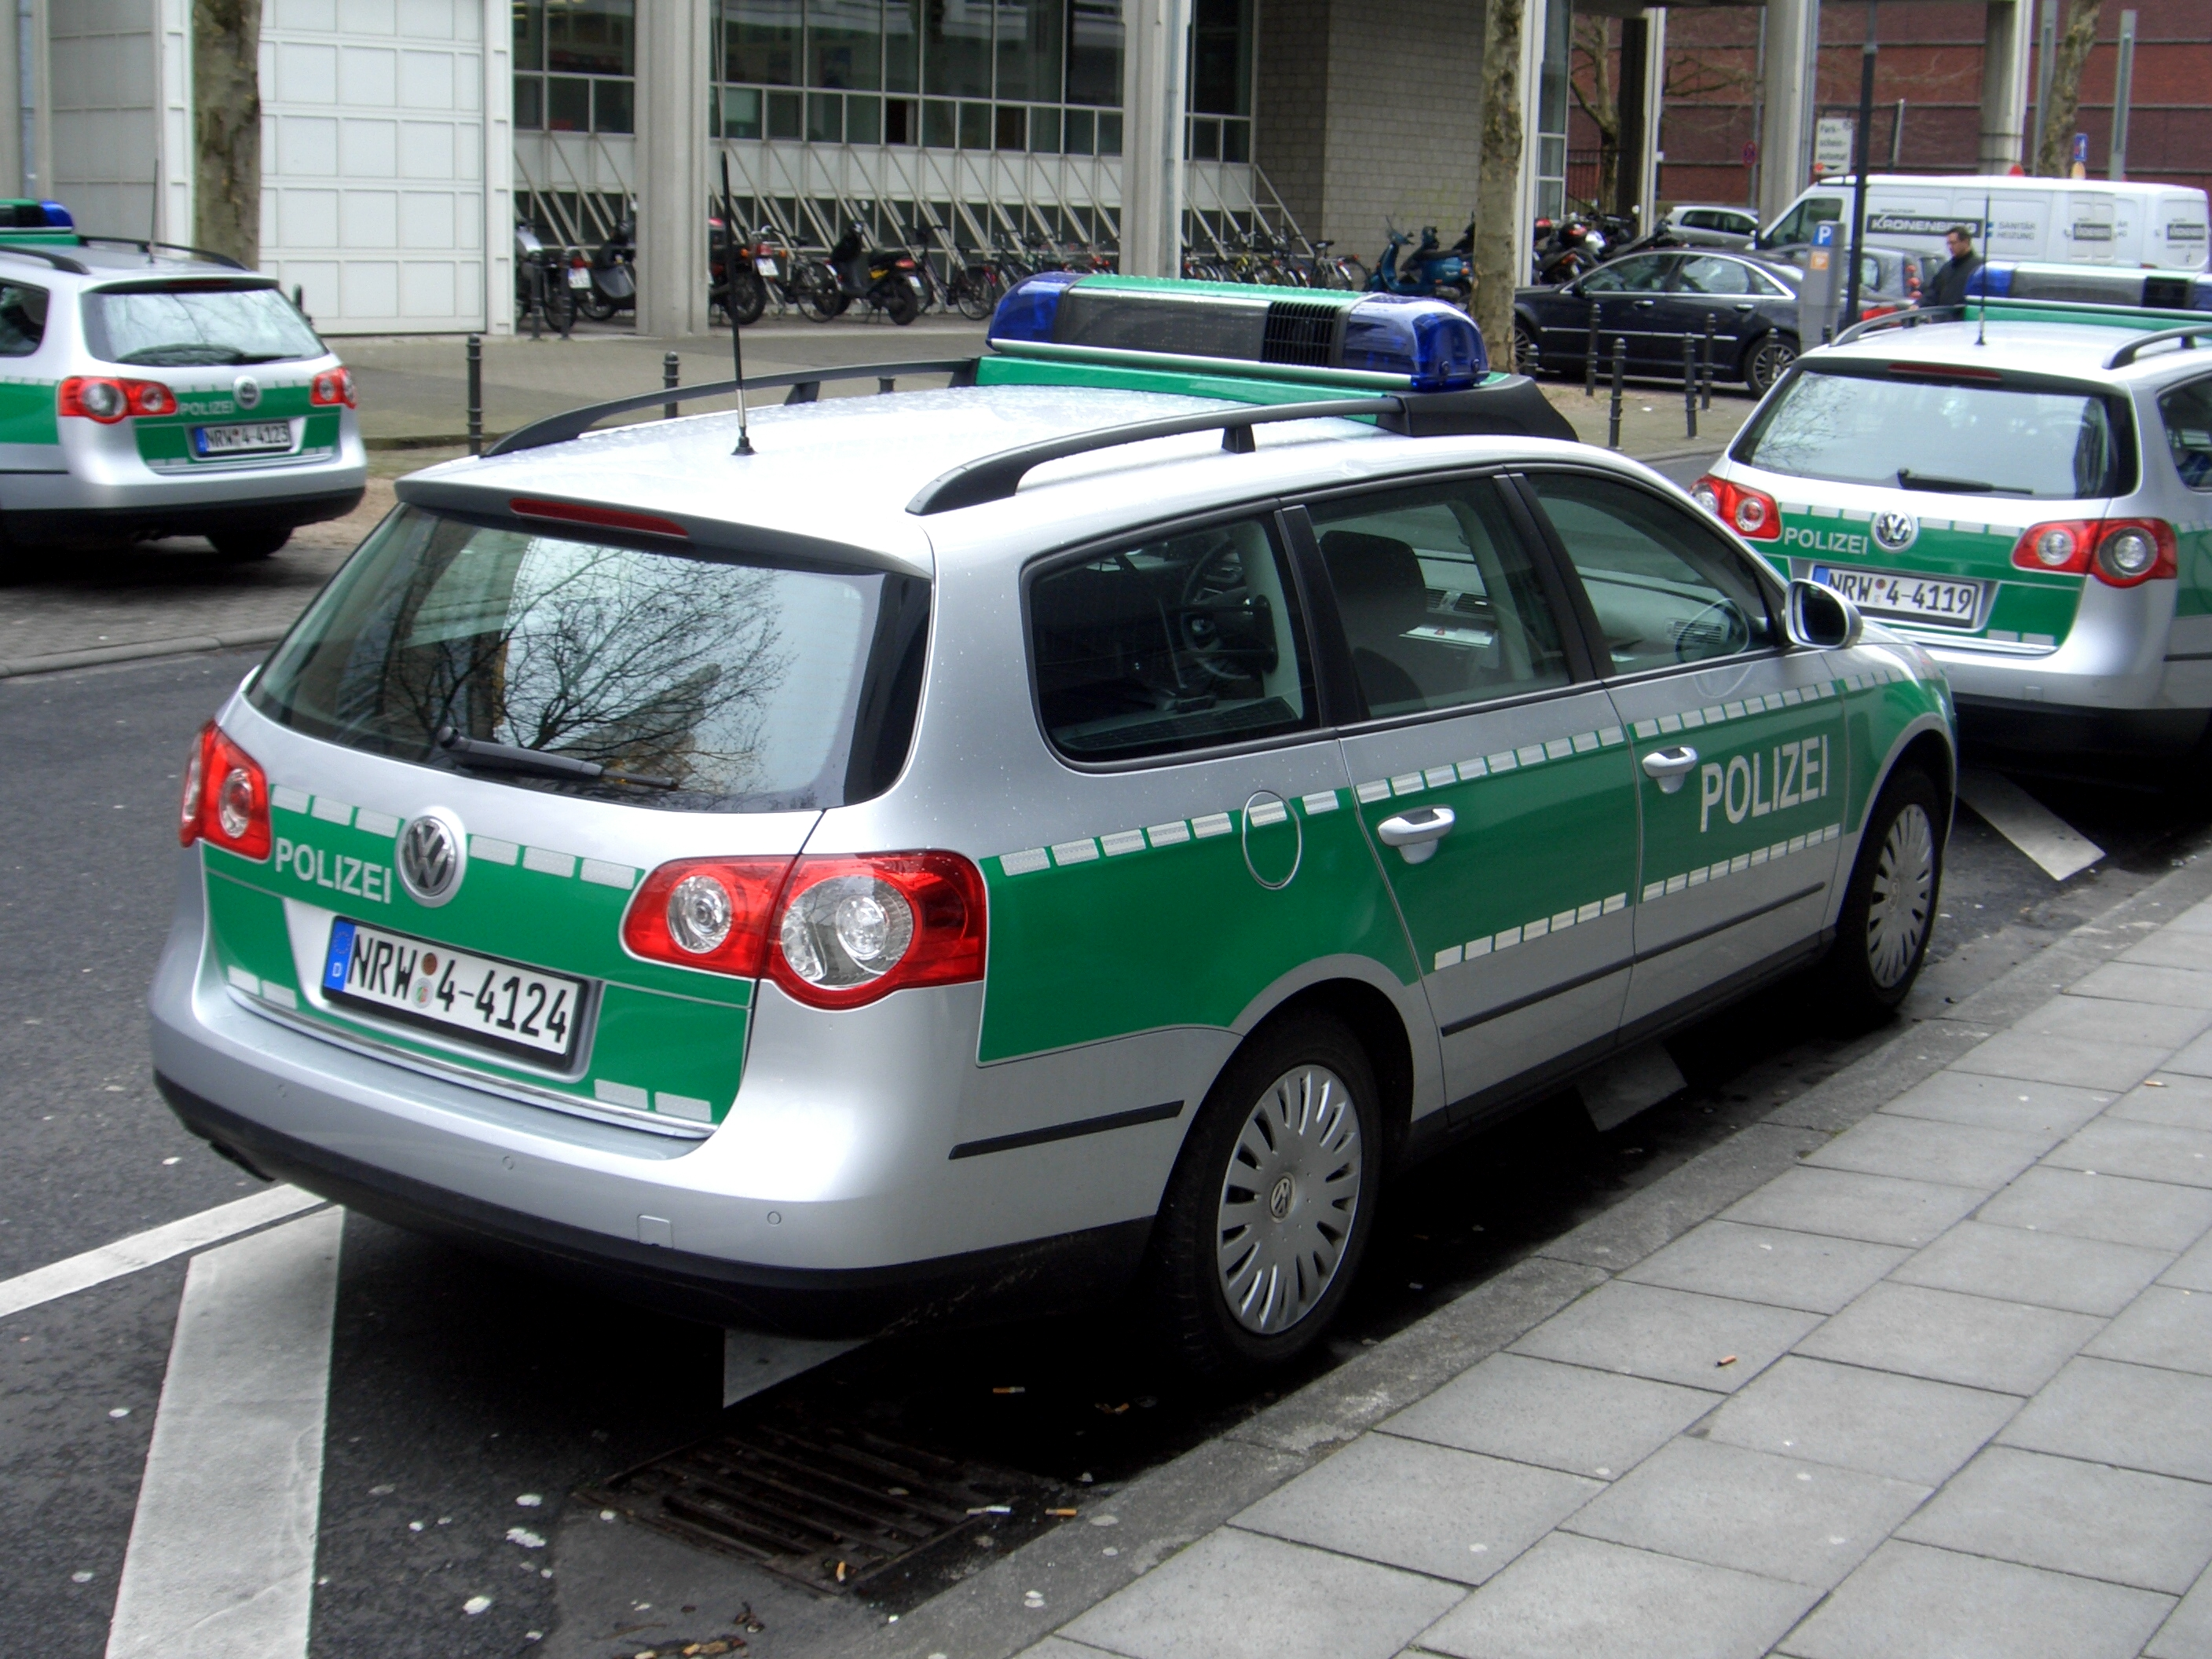 Volkswagen polizei photo - 1